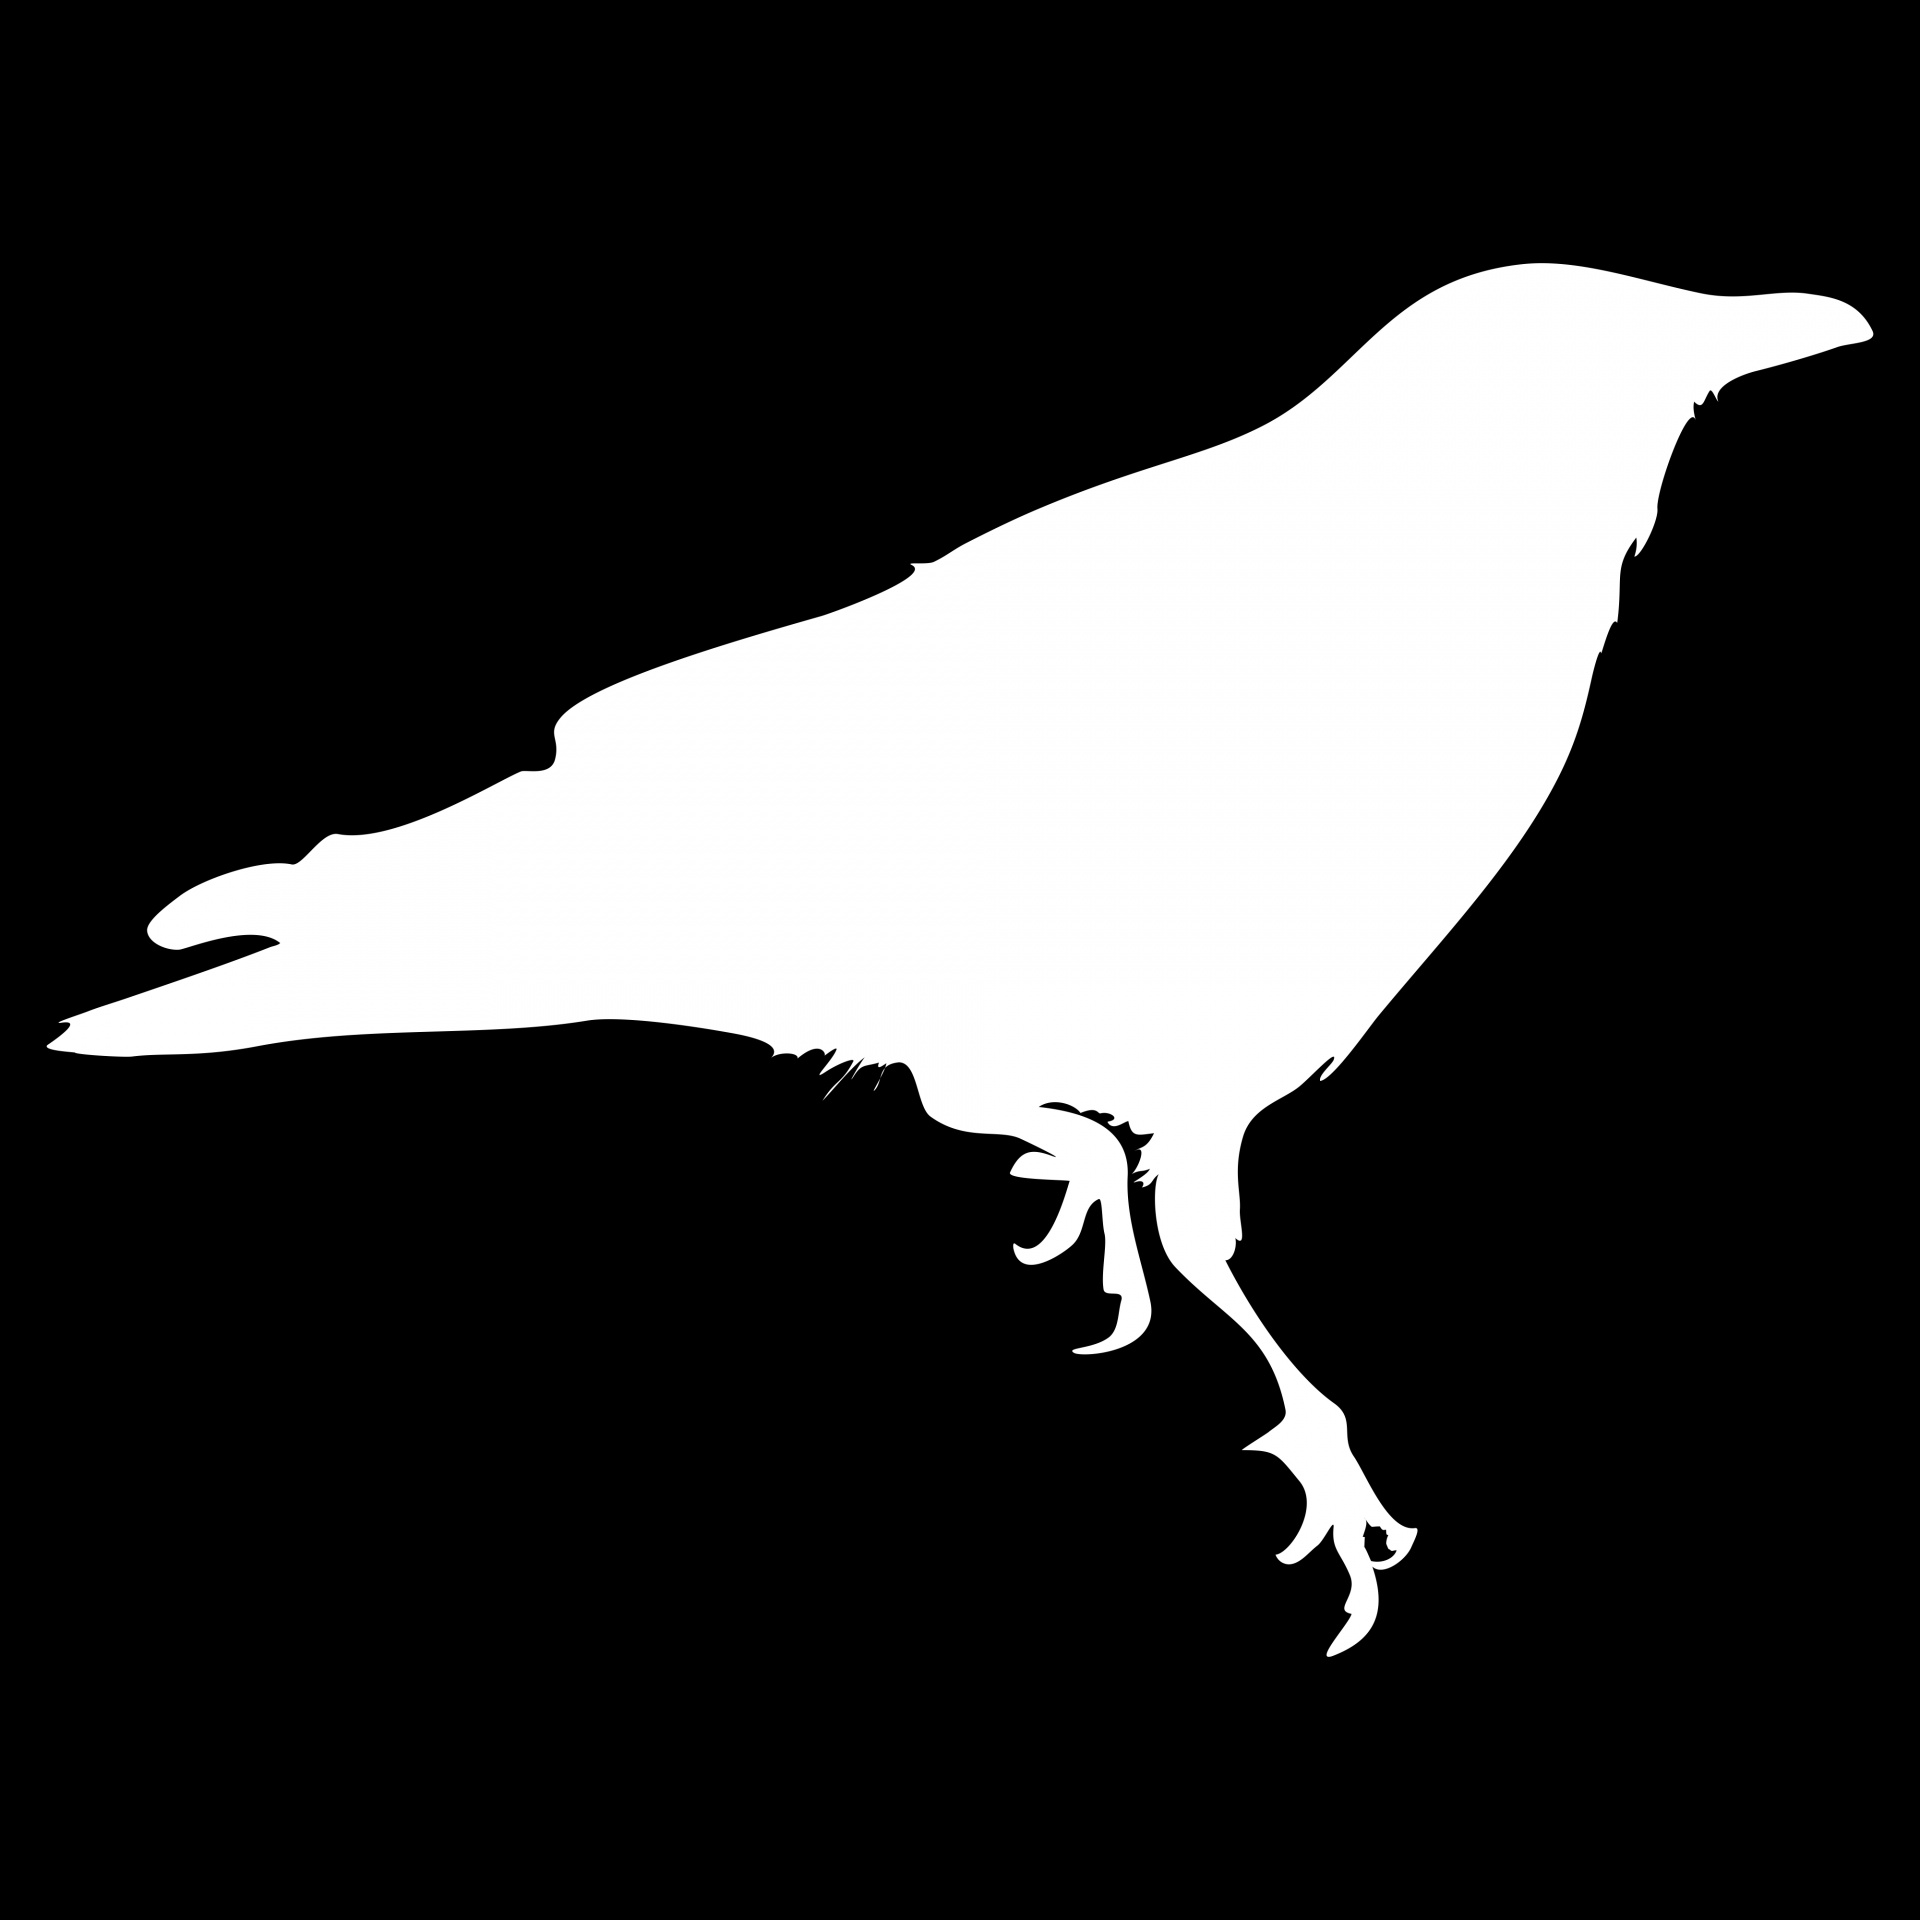 Shade Of The White Crow